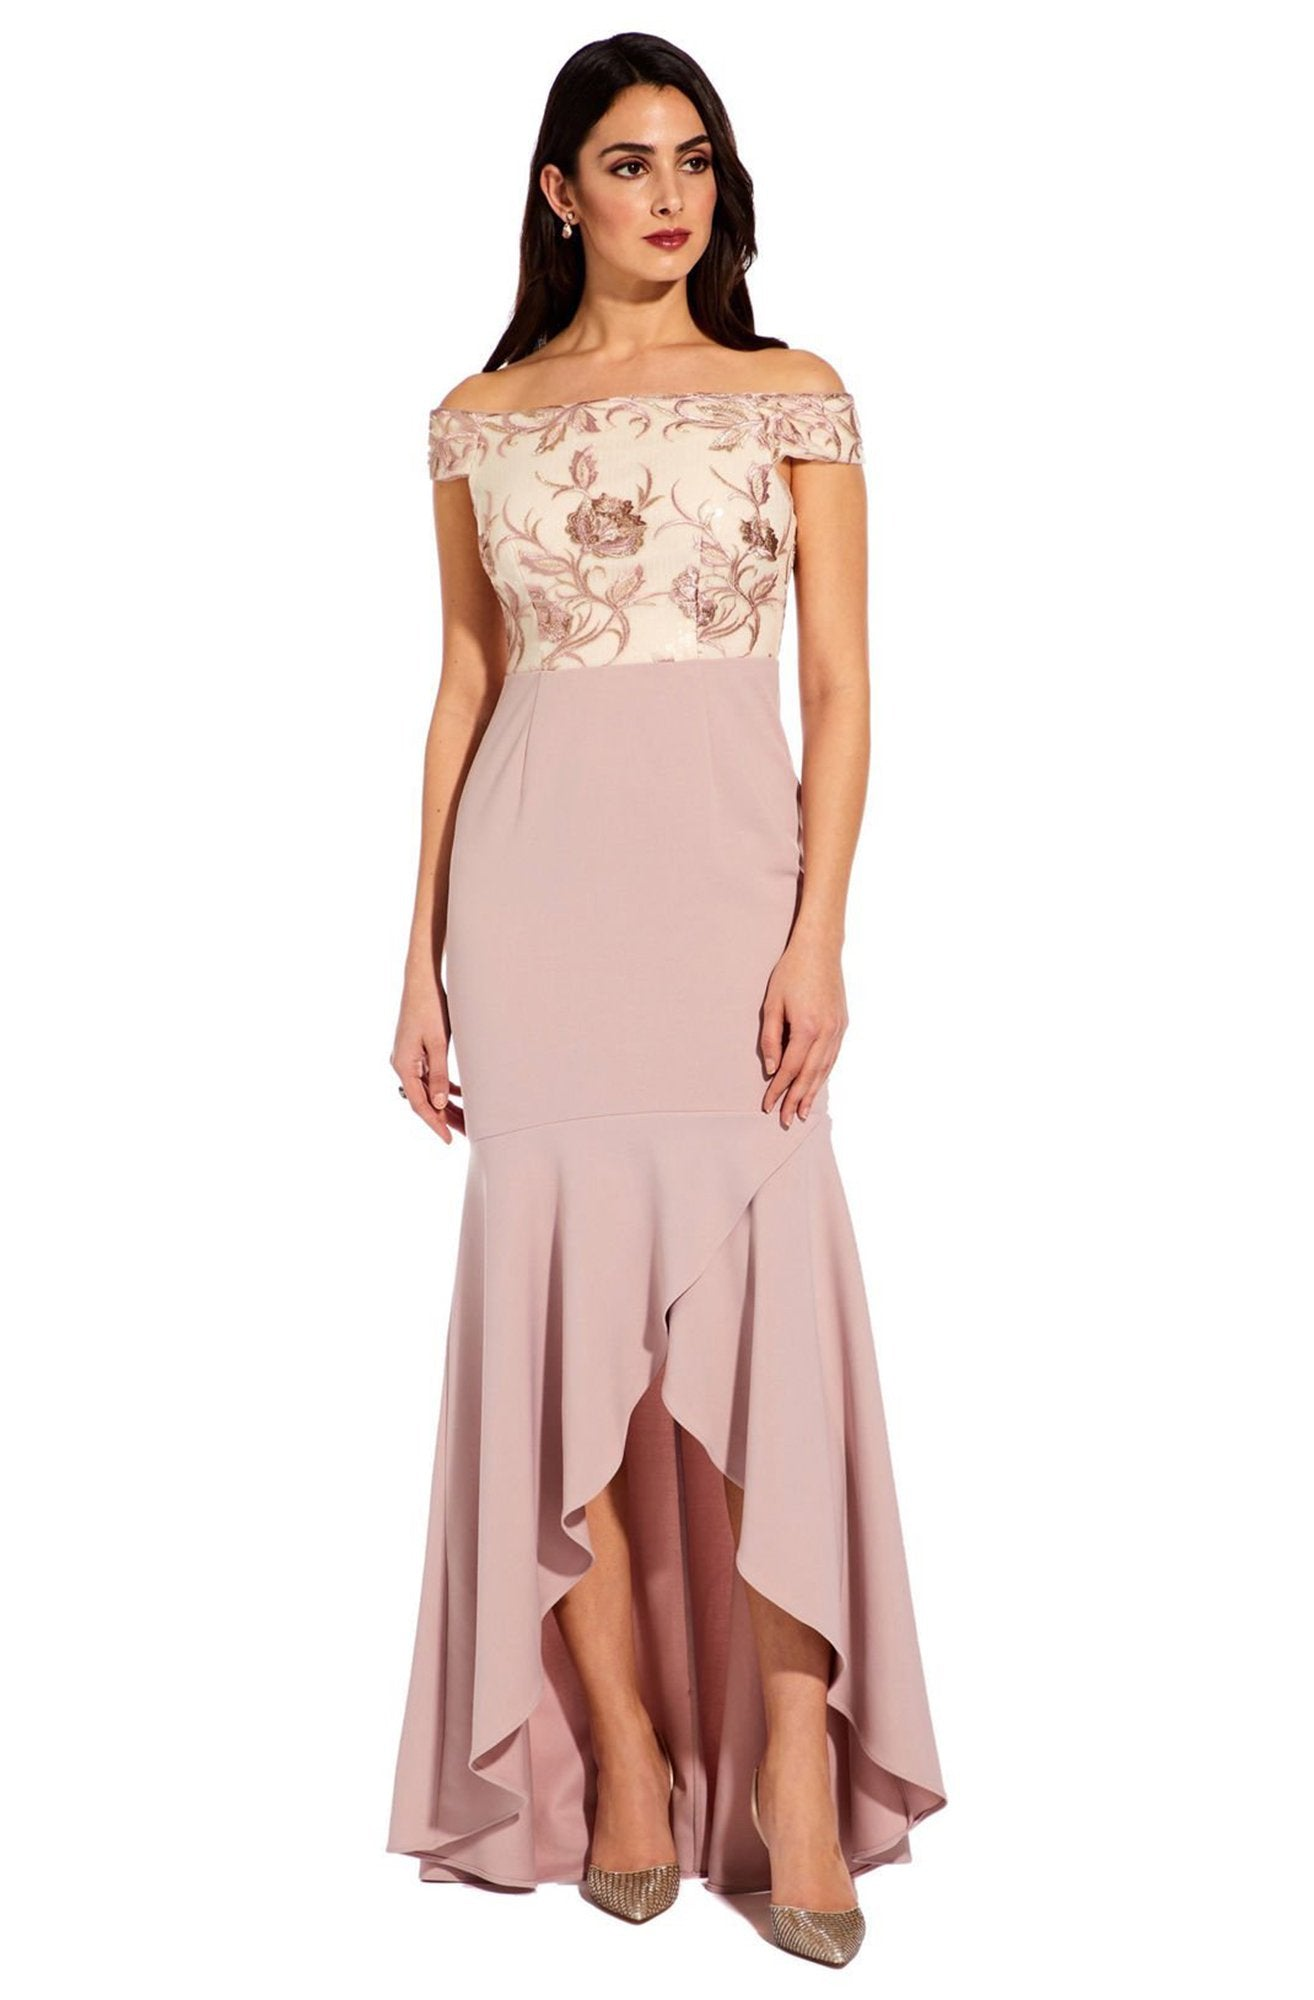 Adrianna Papell - AP1E205308 Embroidered Off-Shoulder Trumpet Dress In Pink